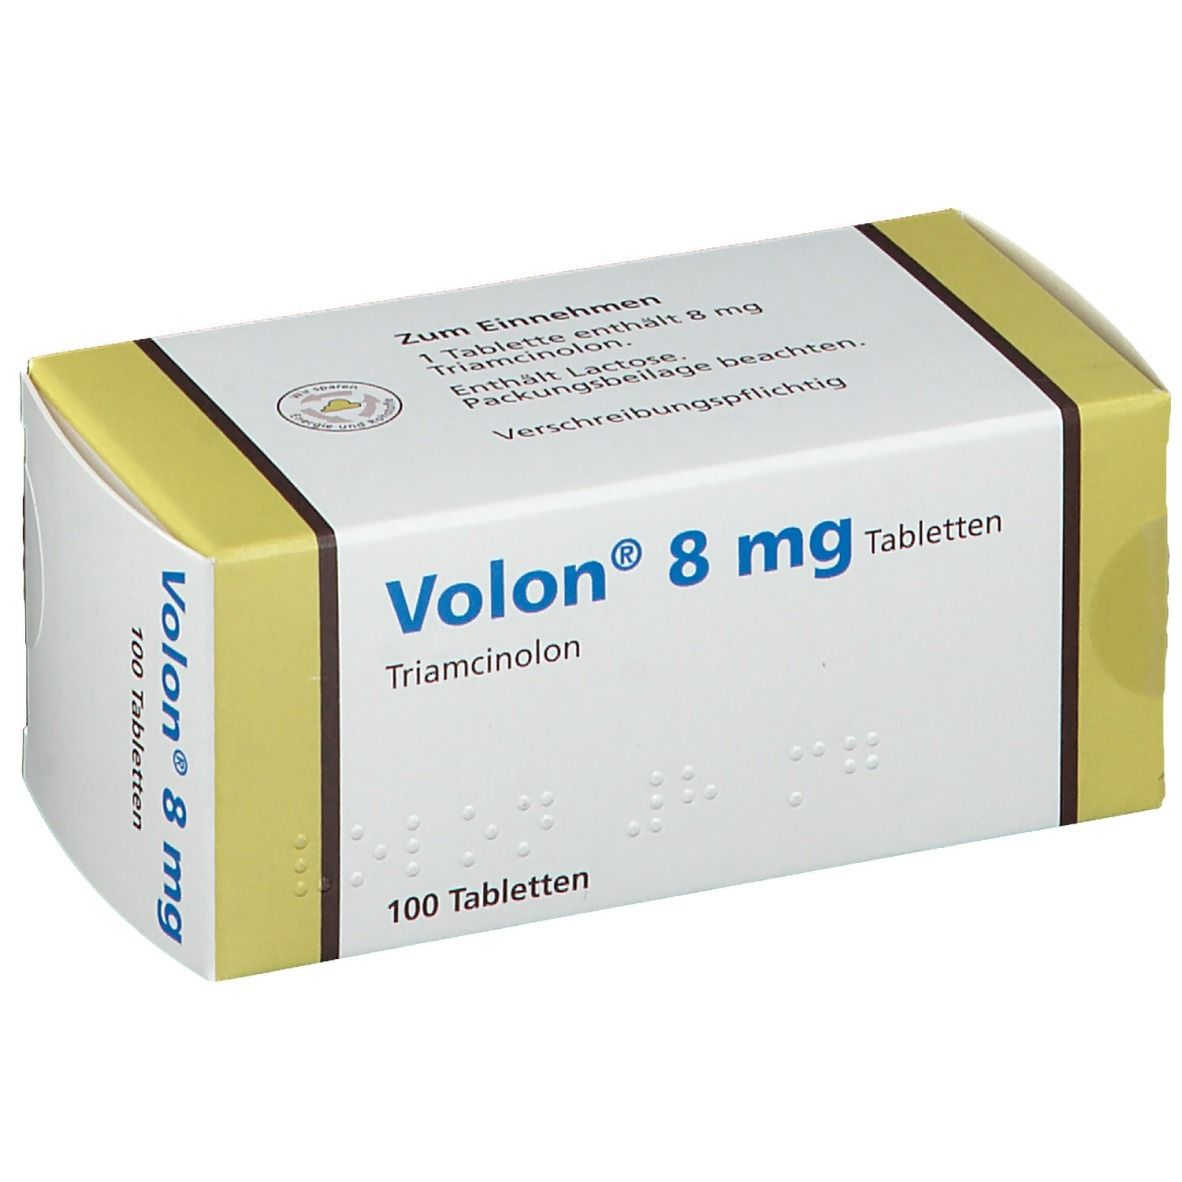 Volon 8 mg Tabletten